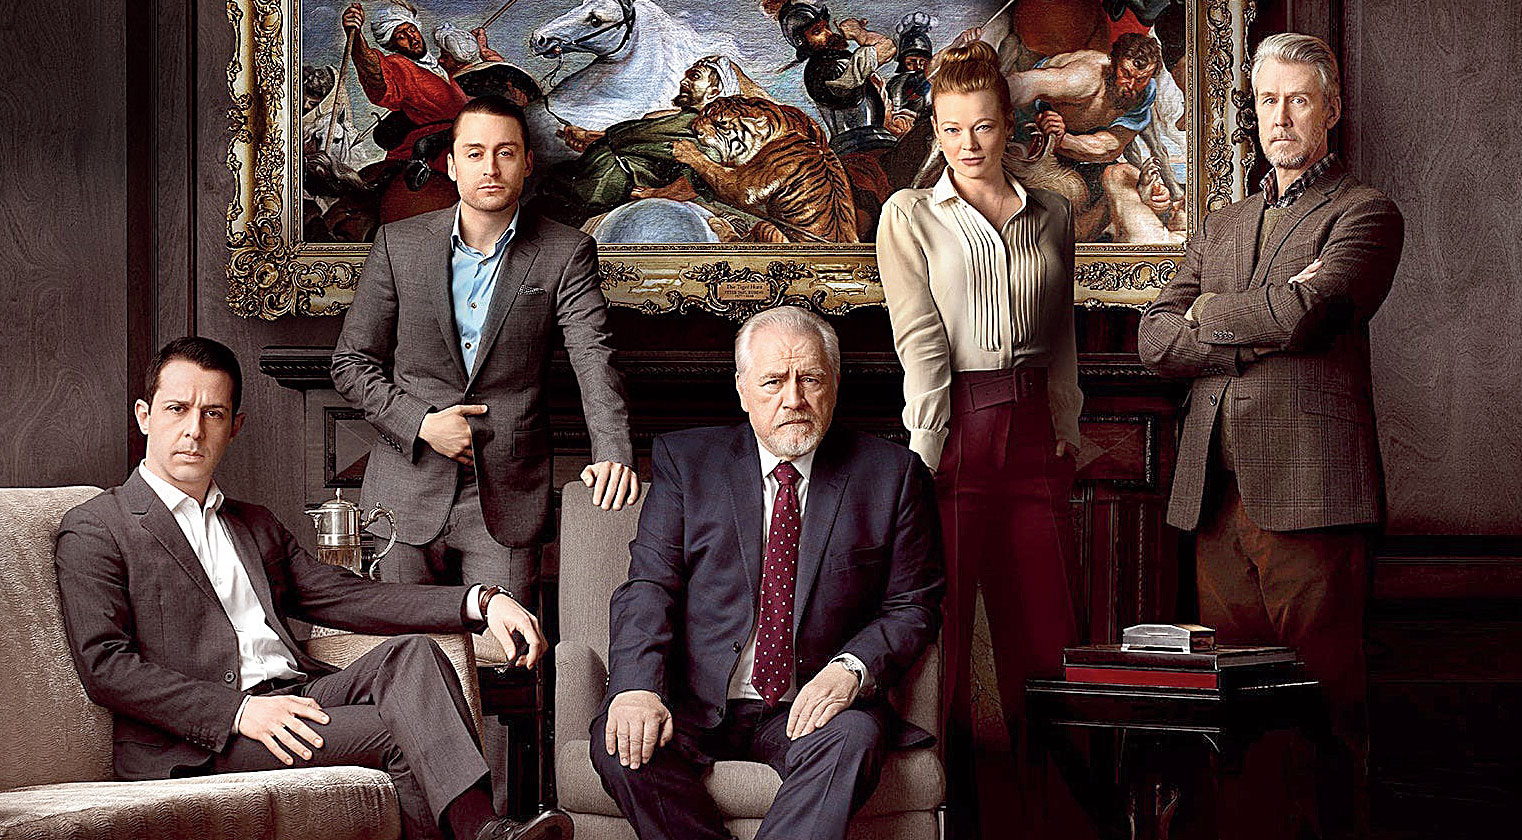 We have always known that the rich do not care beyond their success but Succession provides a backdoor pass to their inner machinations and makes for a riveting watch